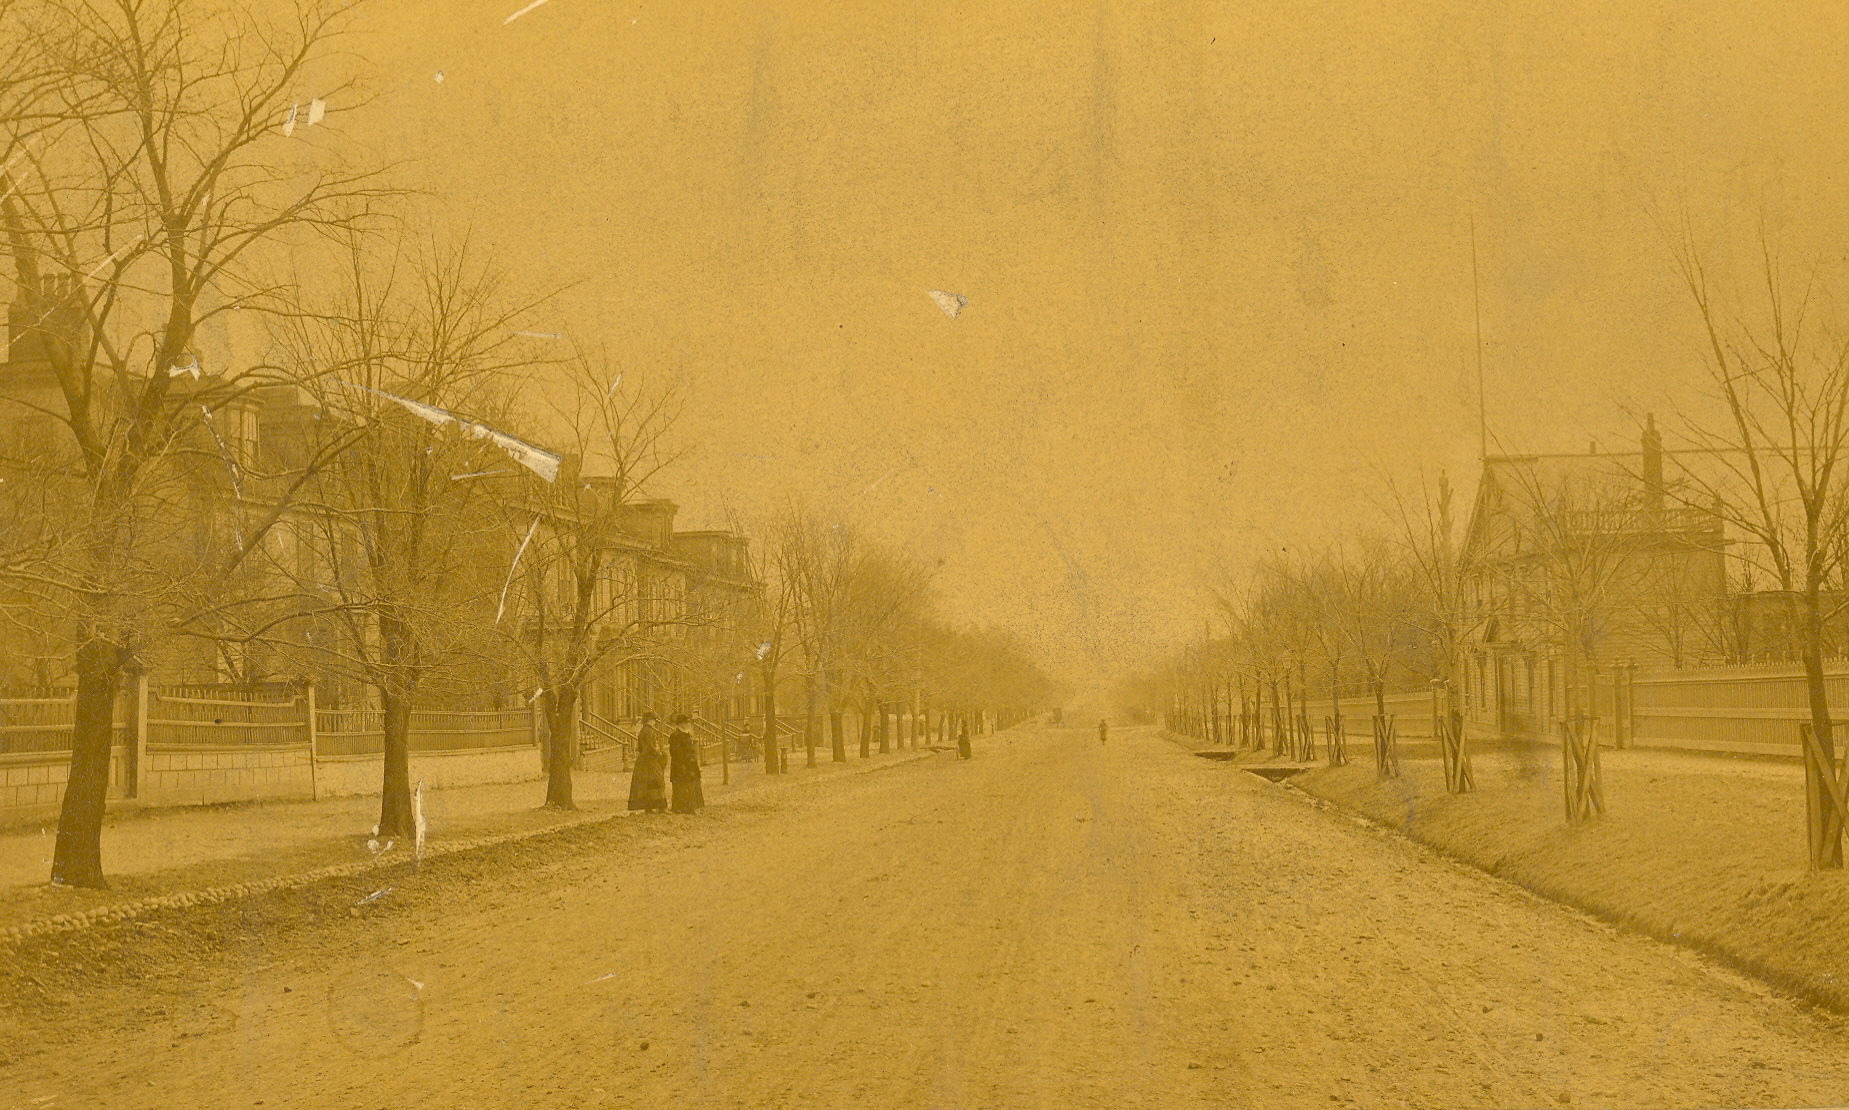 Sepia photo of a wide street in winter.